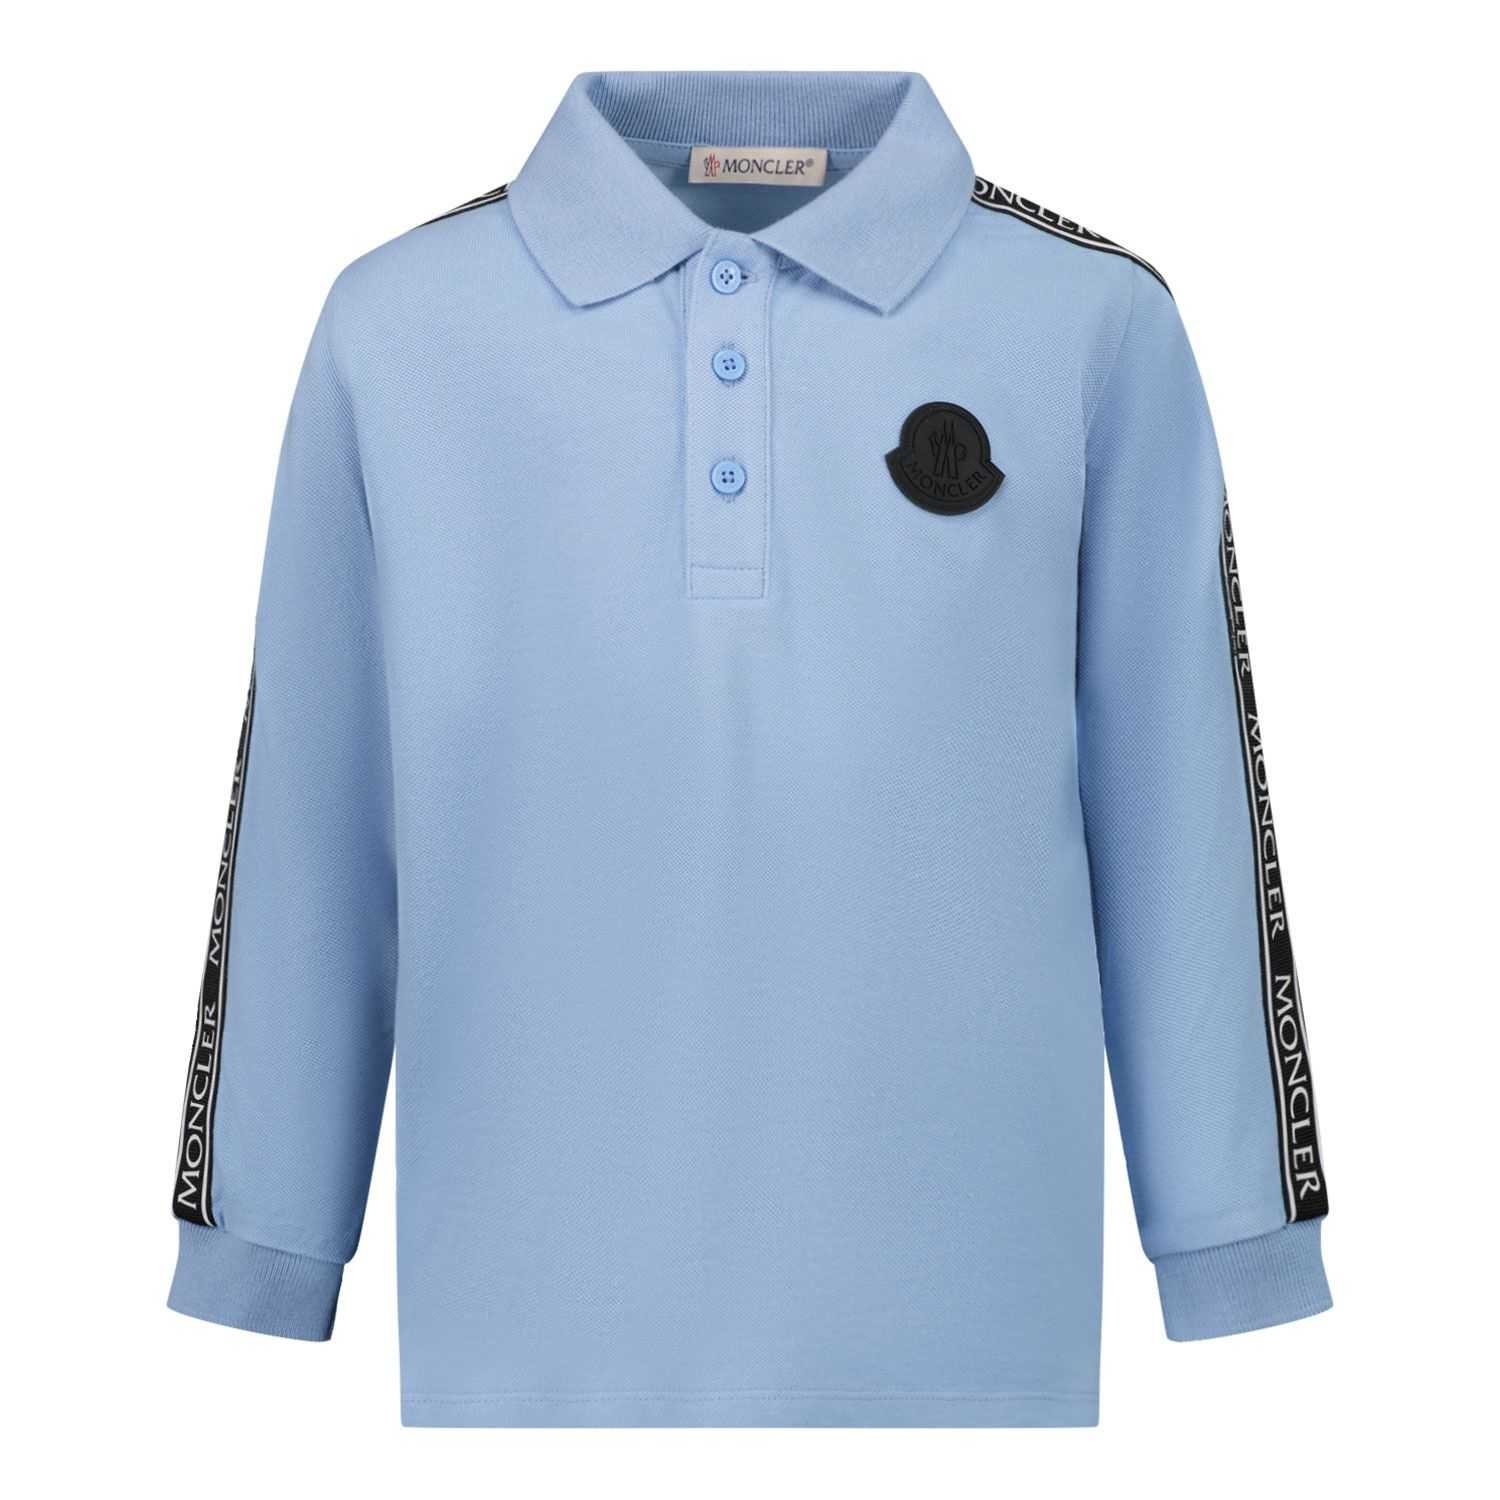 Picture of Moncler 8B71020 baby poloshirt light blue